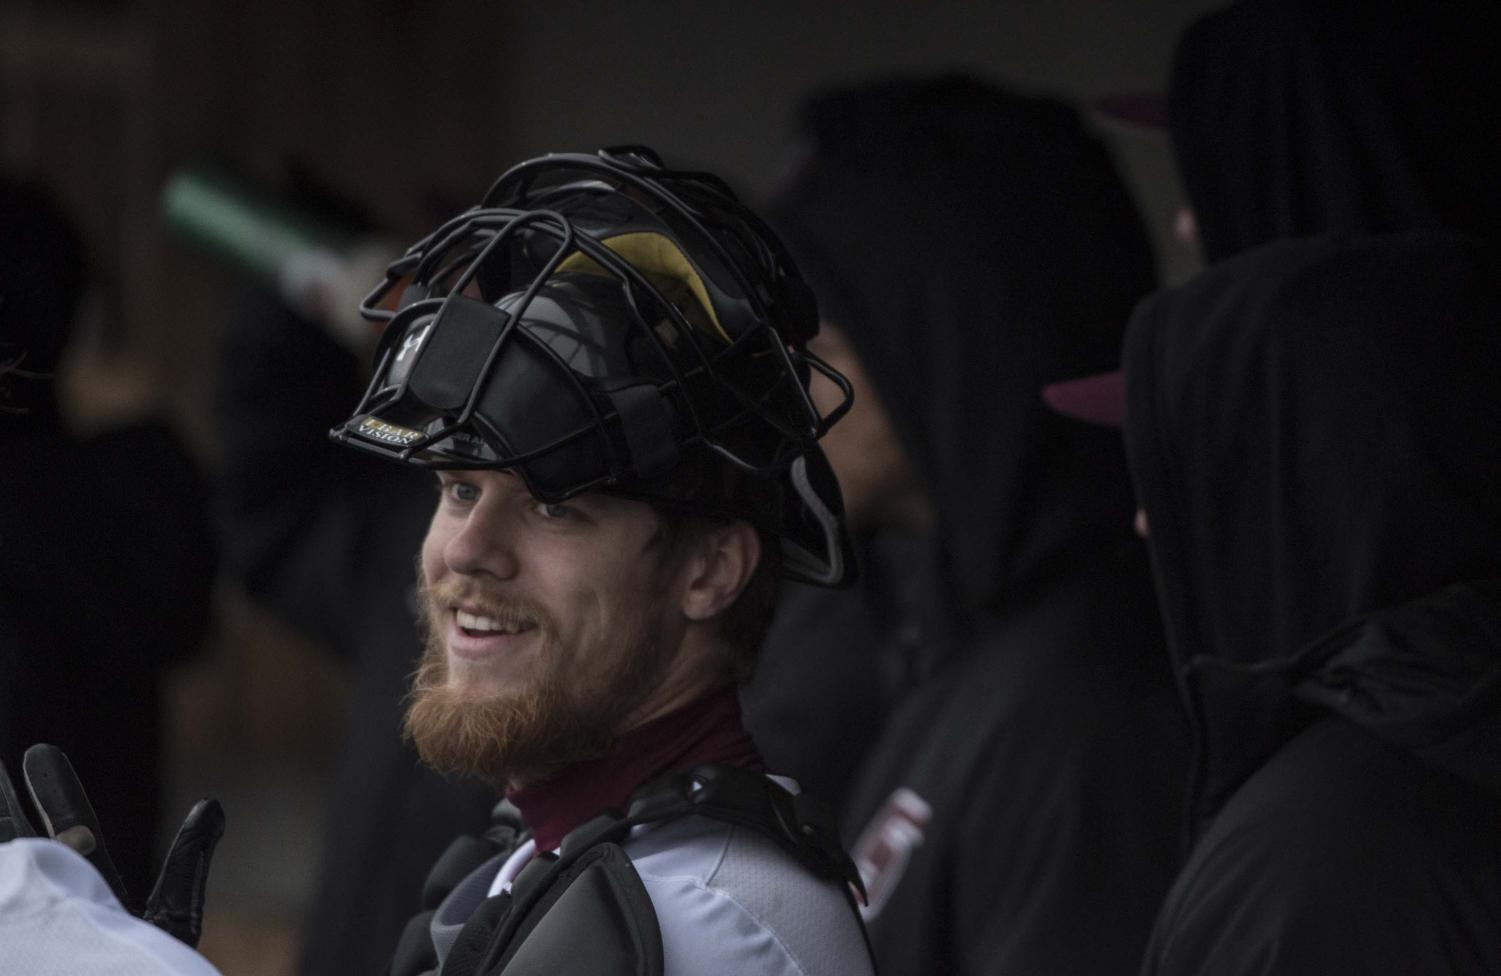 Saluki+catcher+Colin+Butkiewicz+talks+and+laughs+with+fellow+players+in+the+dugout+before+going+out+on+the+field++on+Friday%2C+March+1%2C+2019+during+the+Salukis%27+8-1+win+against+Western+Illinois.